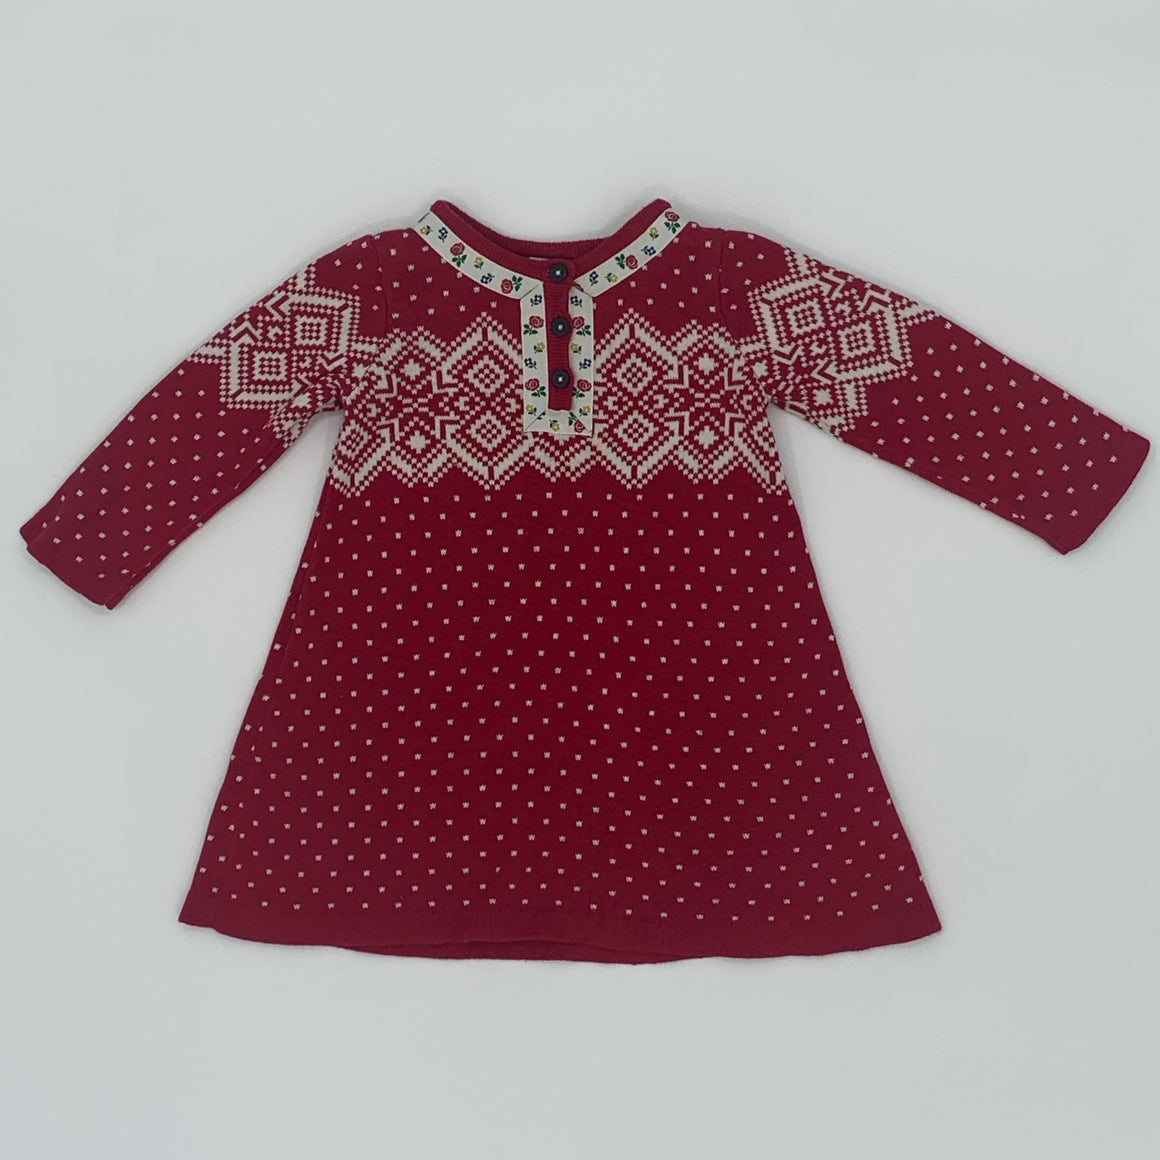 Hardly Worn Hanna Andersson dress size 18-24 months